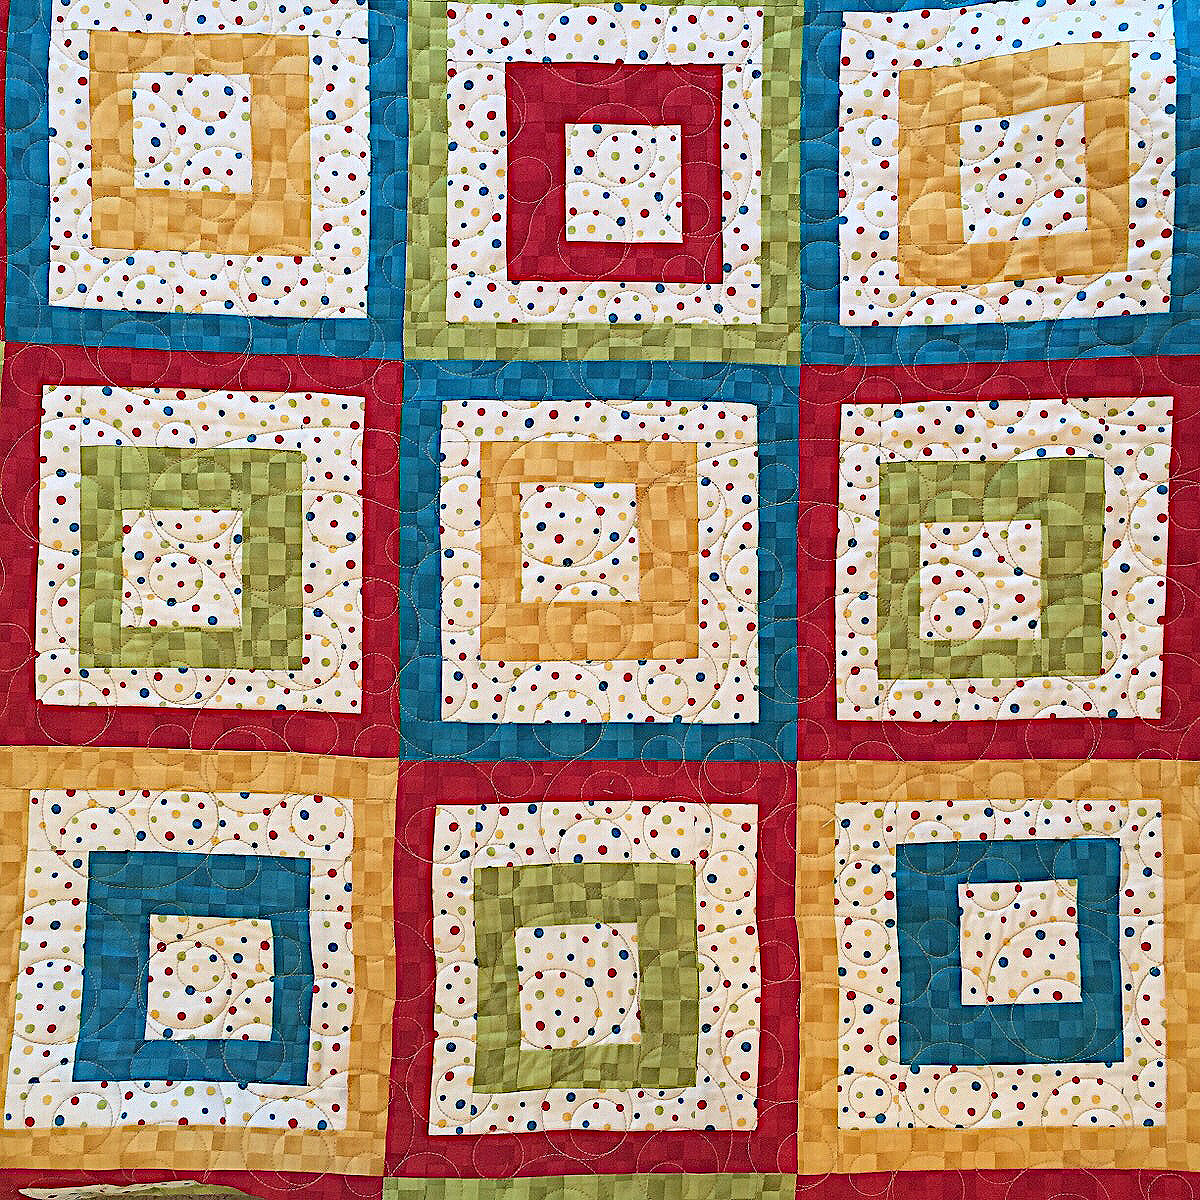 Square in Square with Circles Quilting Pattern